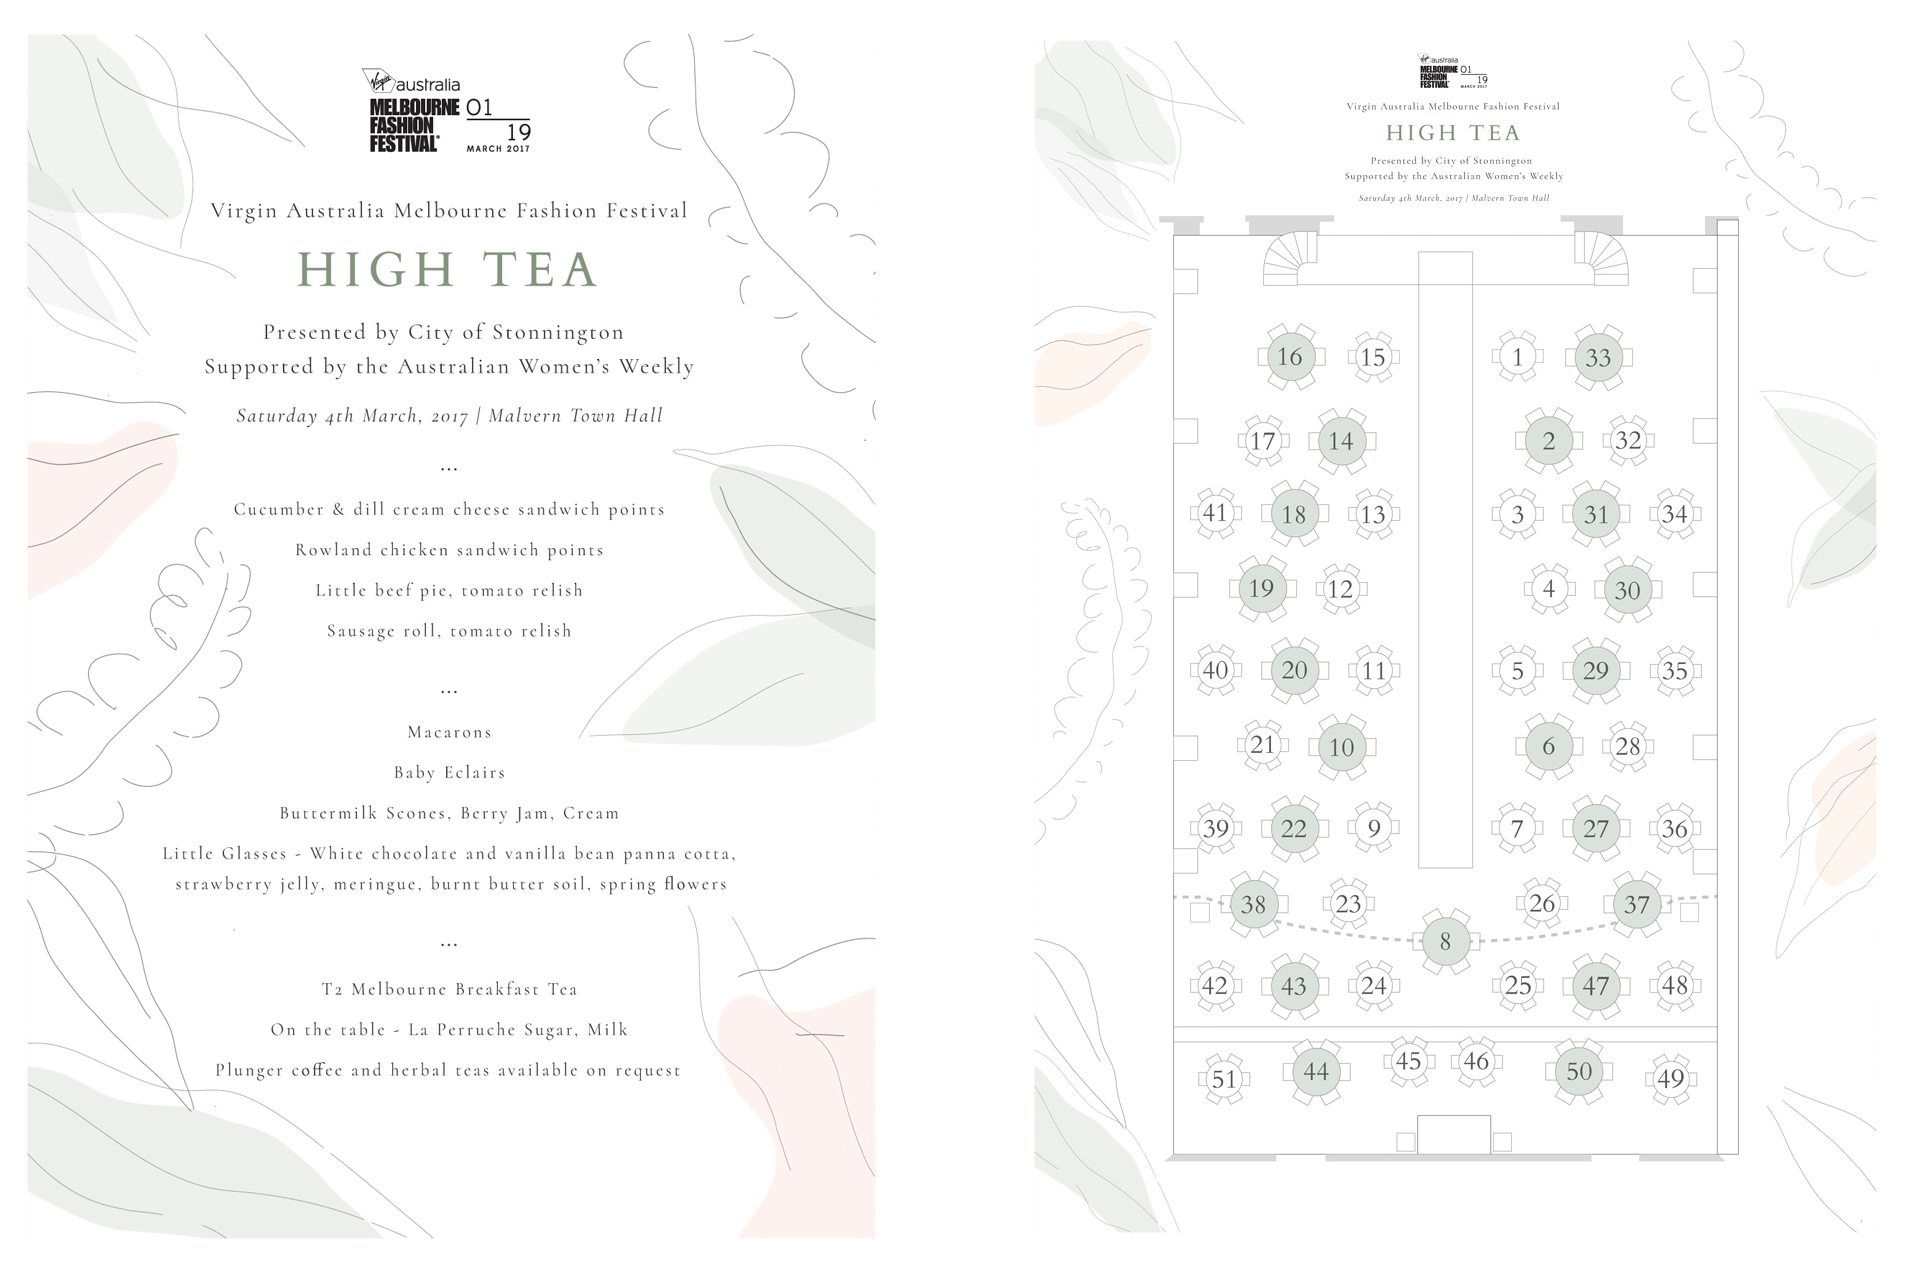 Graphic Design and Illustration of Menu and Seating Plan for  VAMMF High Tea